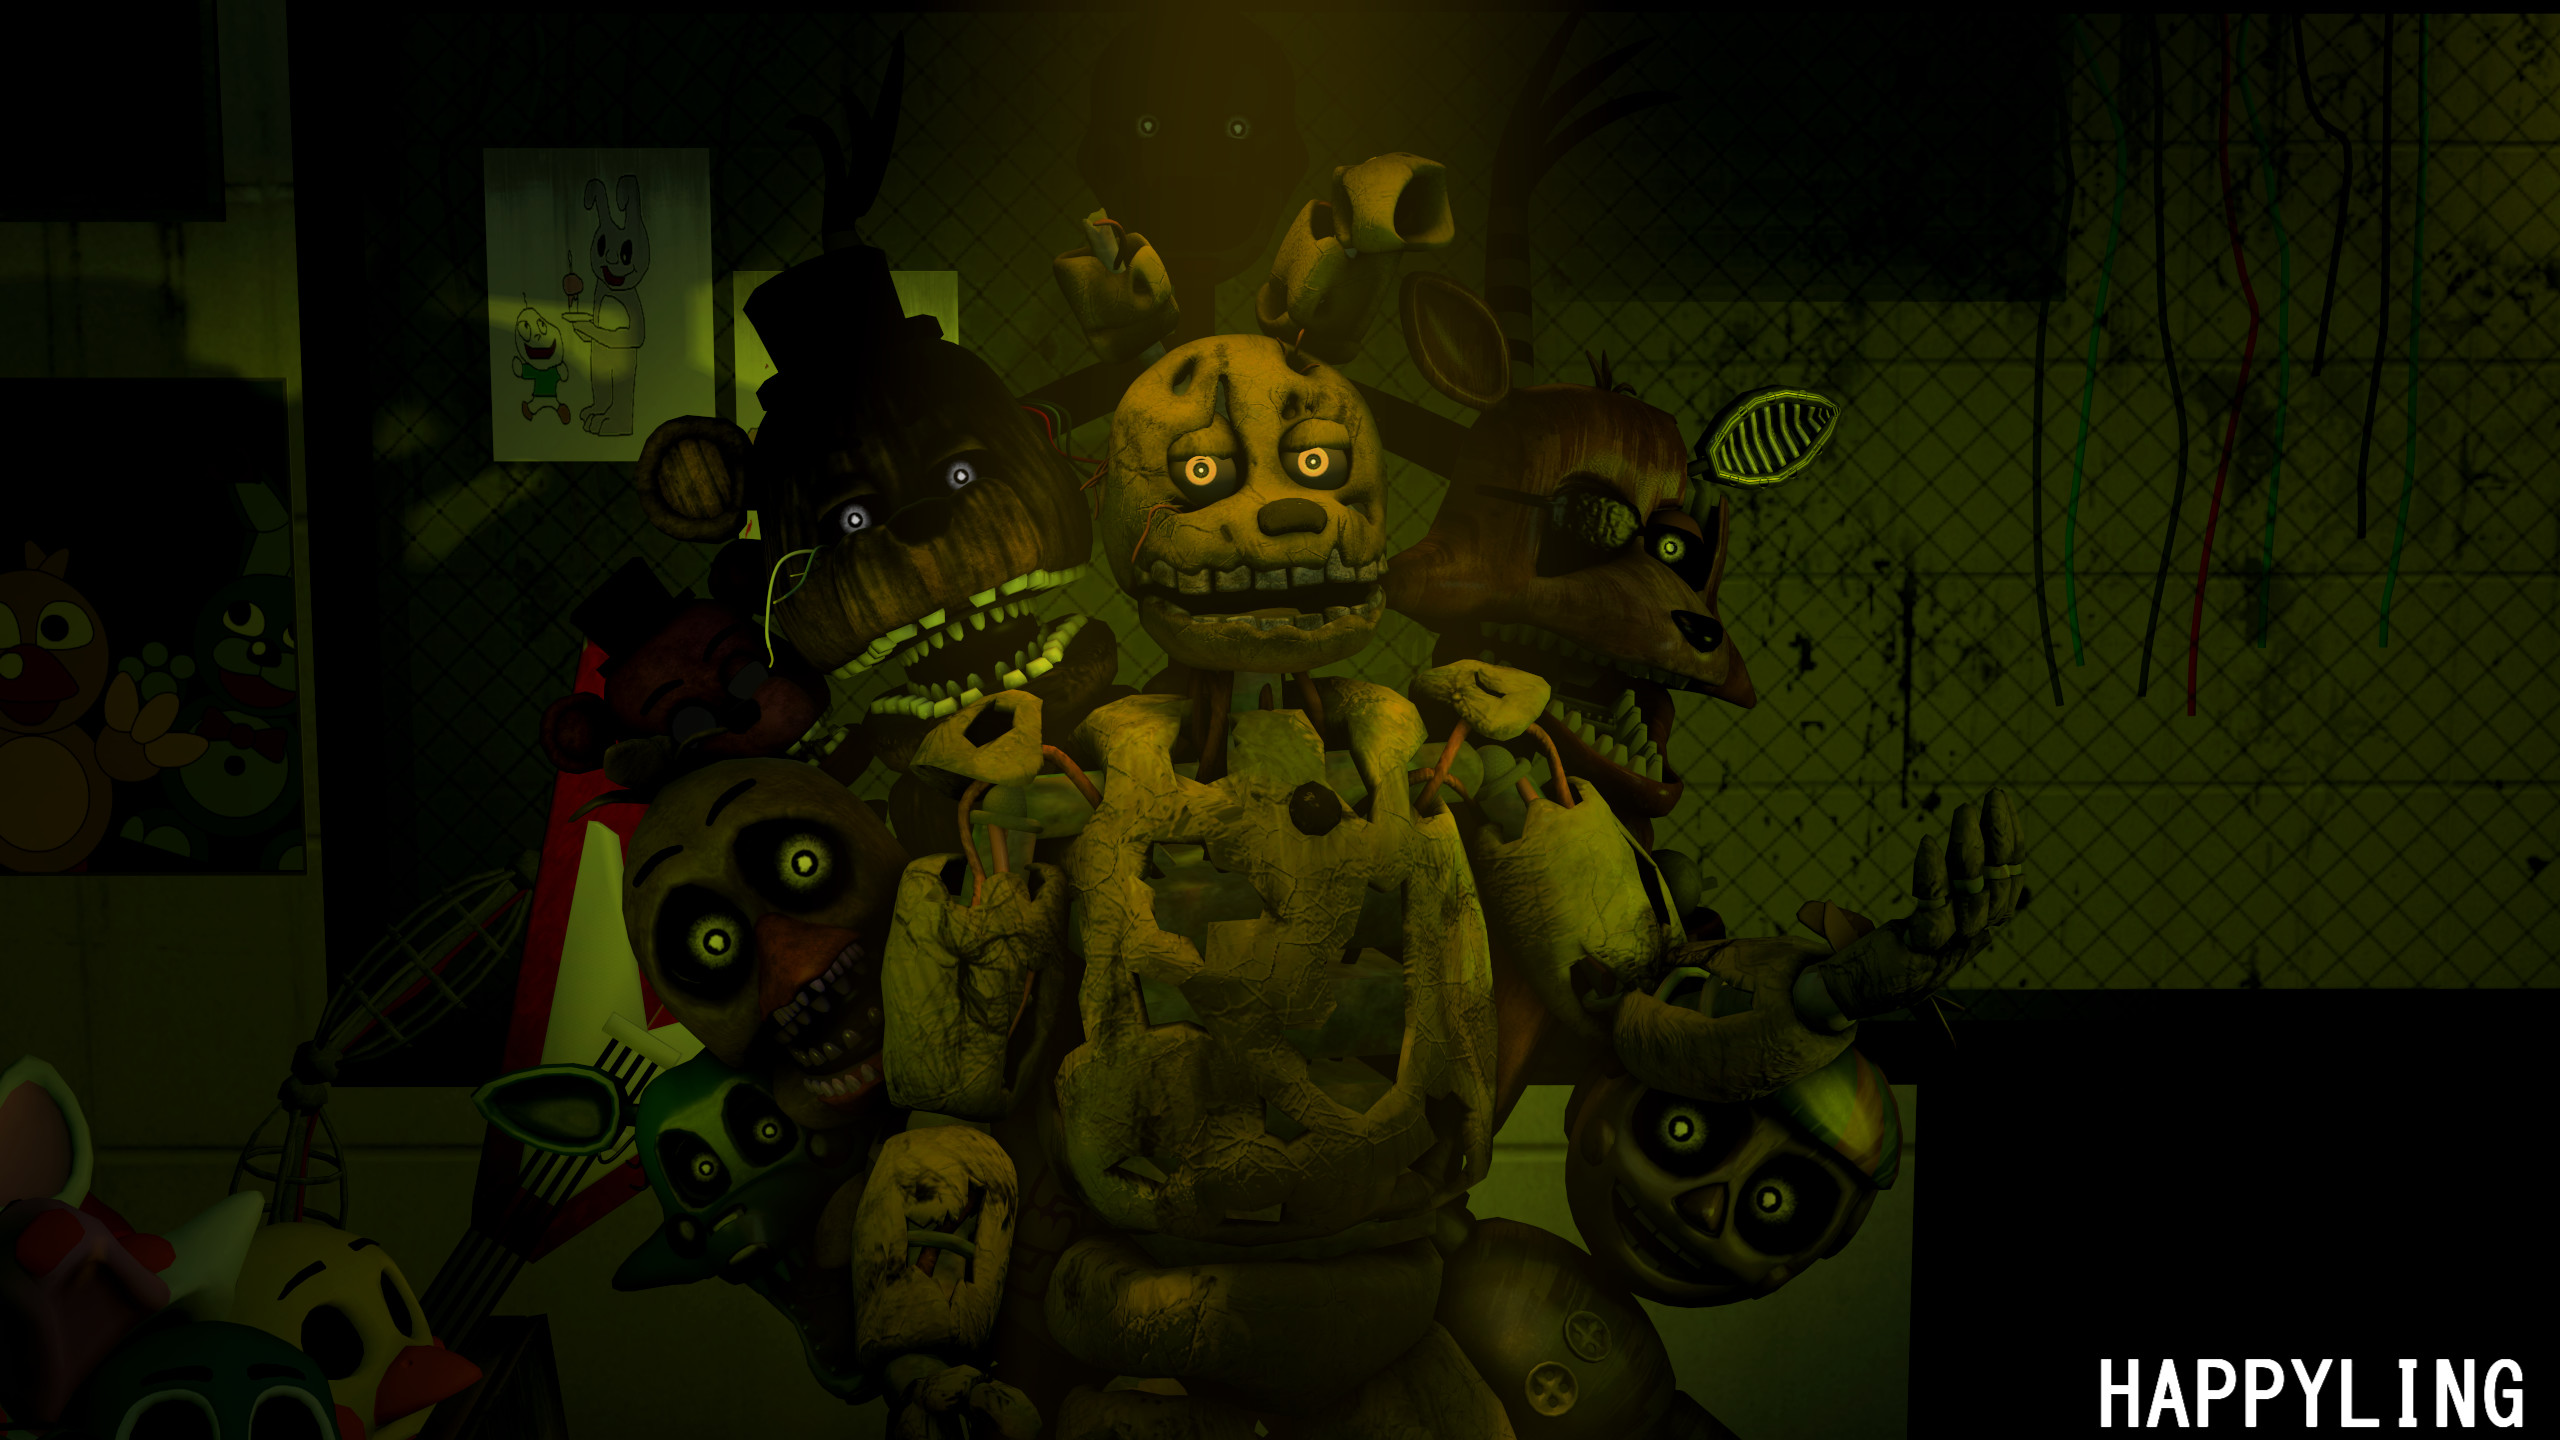 2560x1440 ... FNAF] Five nights at Freddy's 3 by Happyling